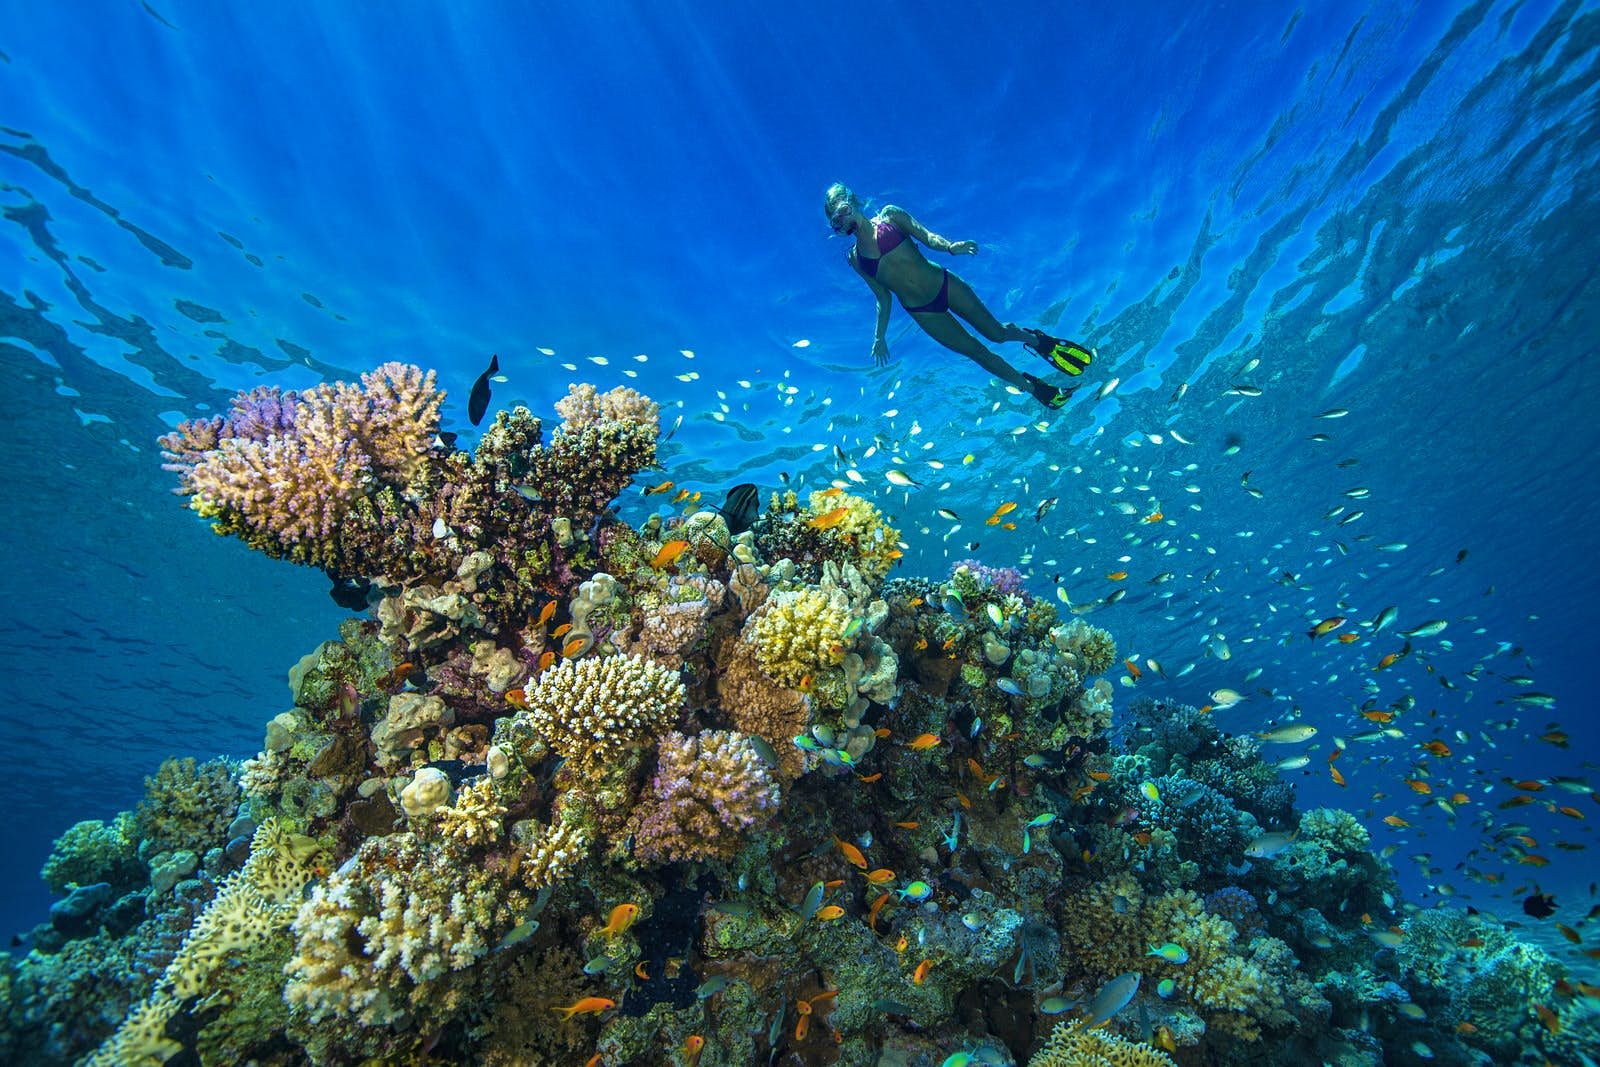 Where To Find The Best Scuba Diving Sites In The Middle